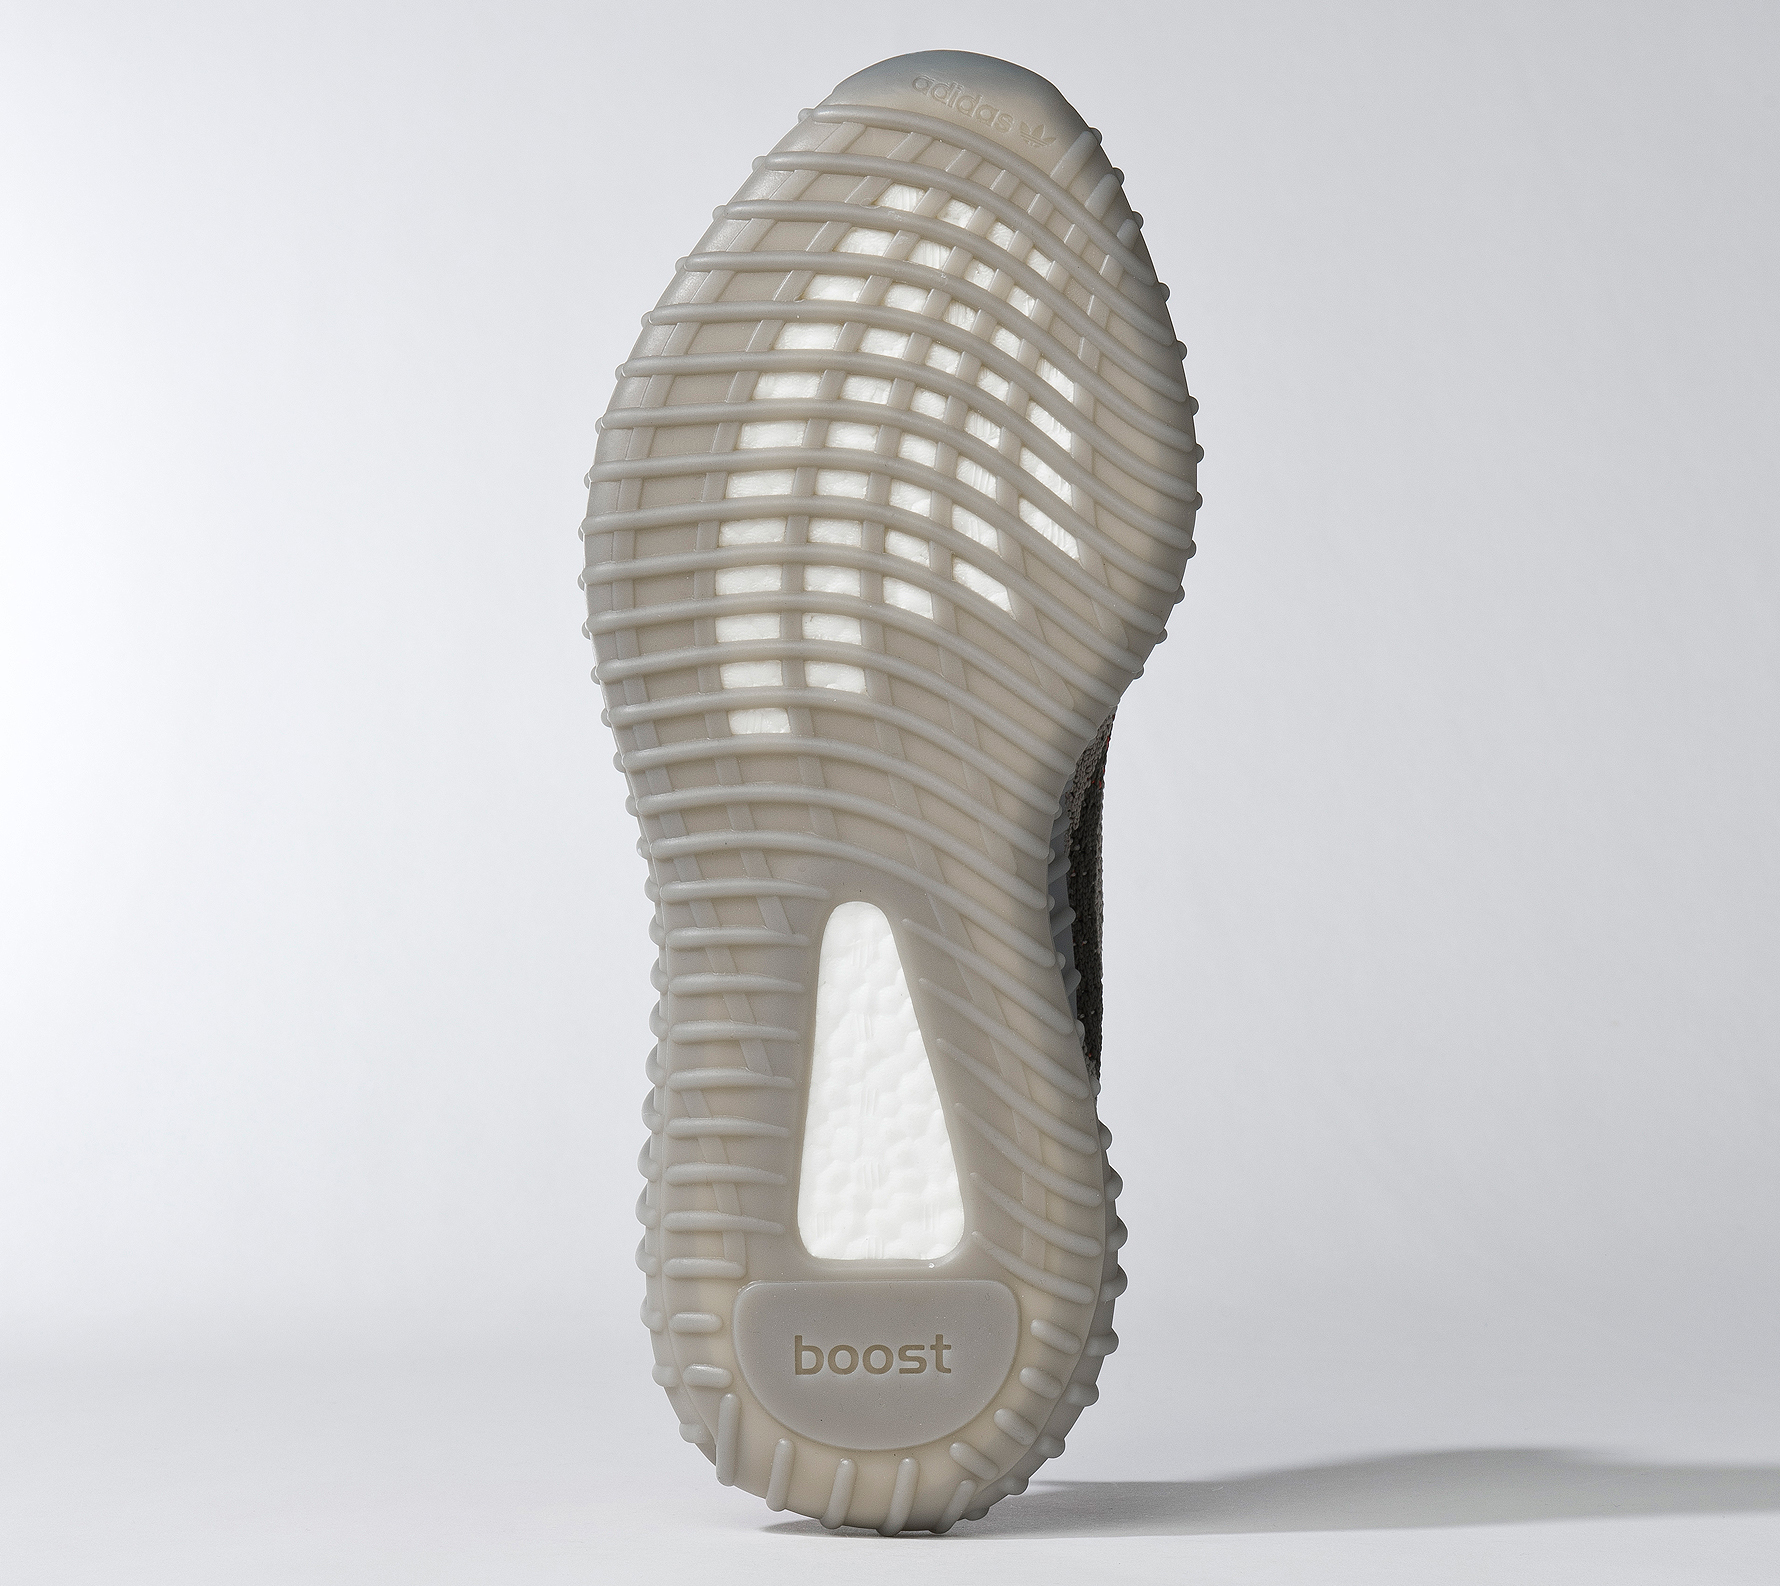 UPC 889132906189 Adidas Yeezy Boost 350 Oxford Tan AQ2661